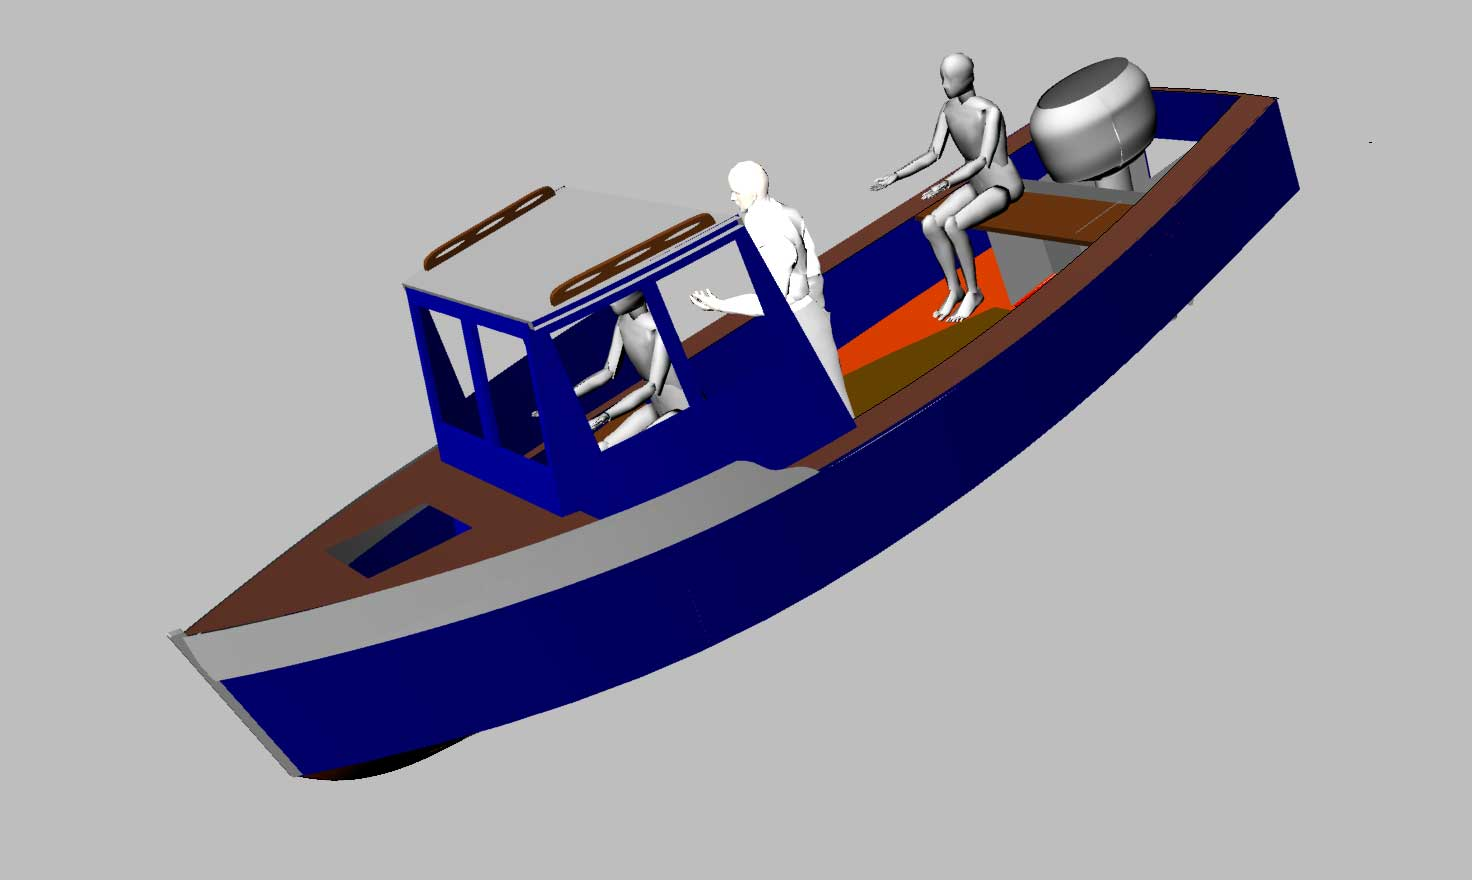 ... built in wood builder will use stitch and glue for hull construction